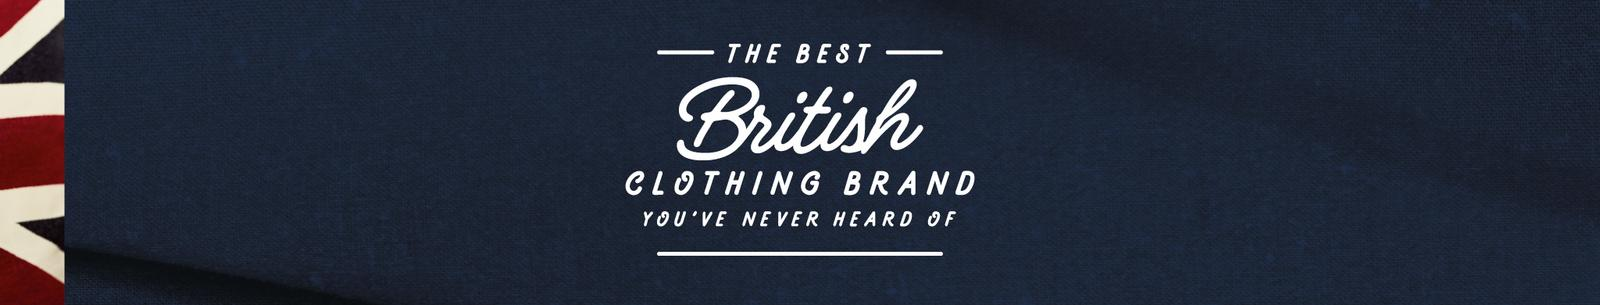 The best british clothing brand you've never heard of